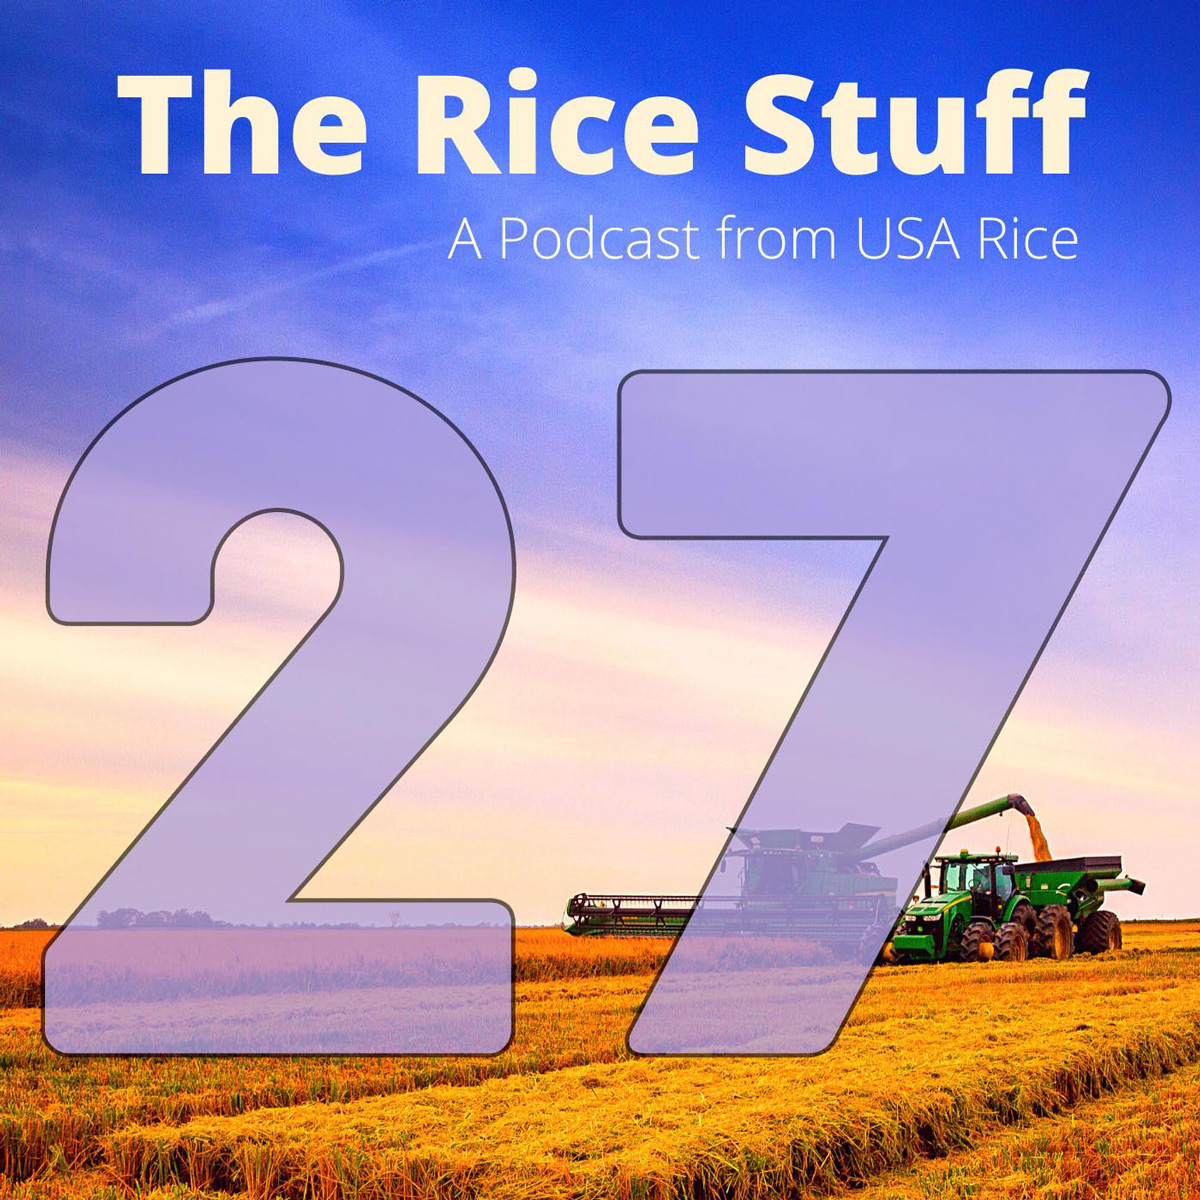 Number 27 superimposed over photo of combine and grain cart in mature rice field